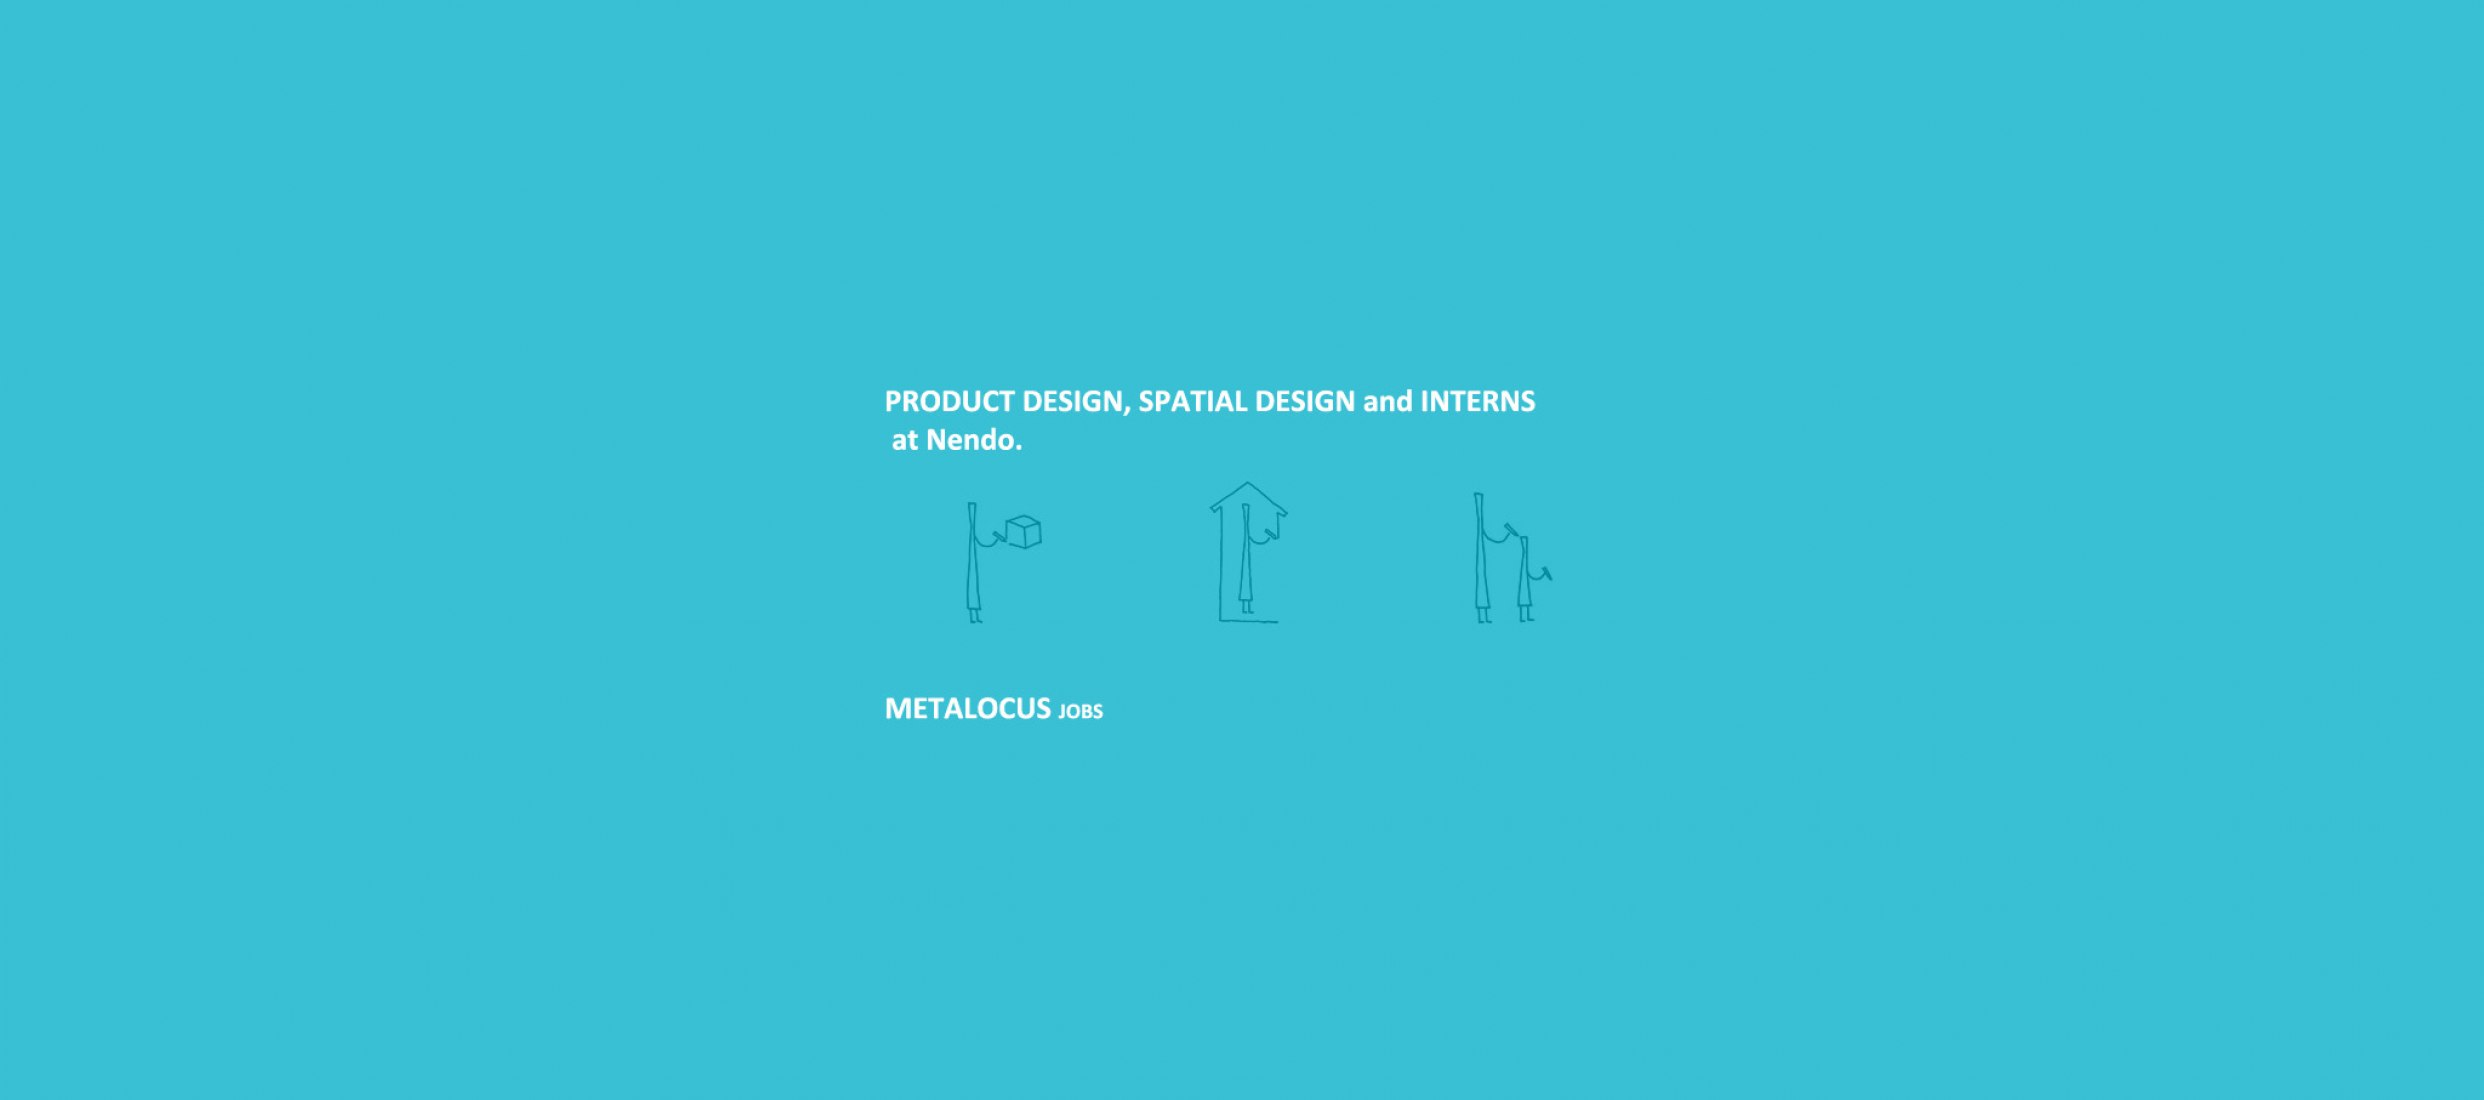 Product design, Spatial design and Interns at Nendo